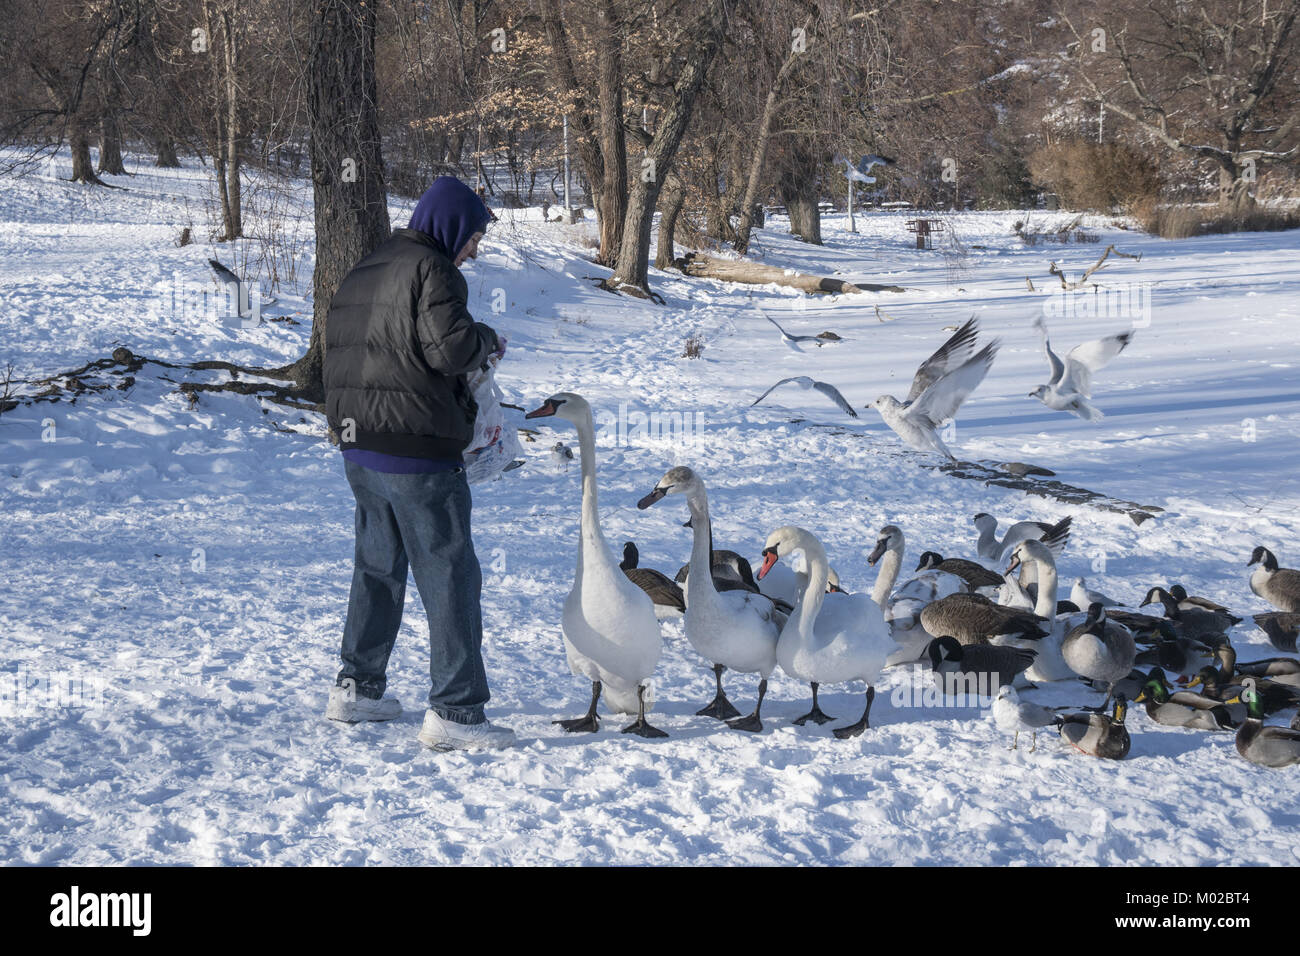 Man feeds geese and swans during the winter in Prospect Park when food is hard to come by.  Brooklyn, New York. - Stock Image